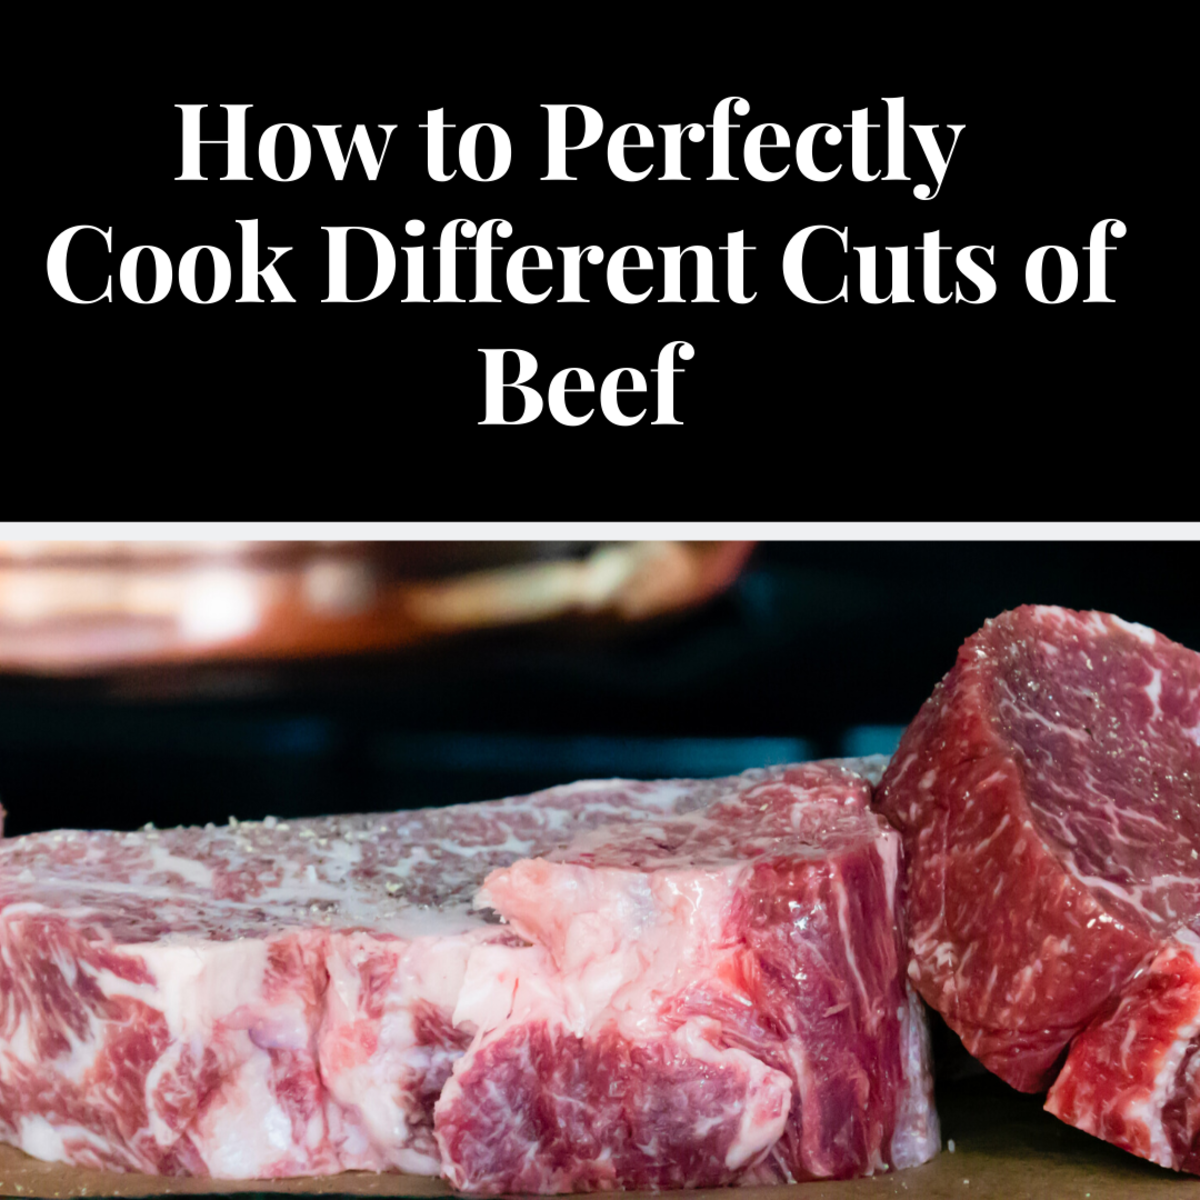 Different cuts of beef require different cooking methods. Read on to learn more.